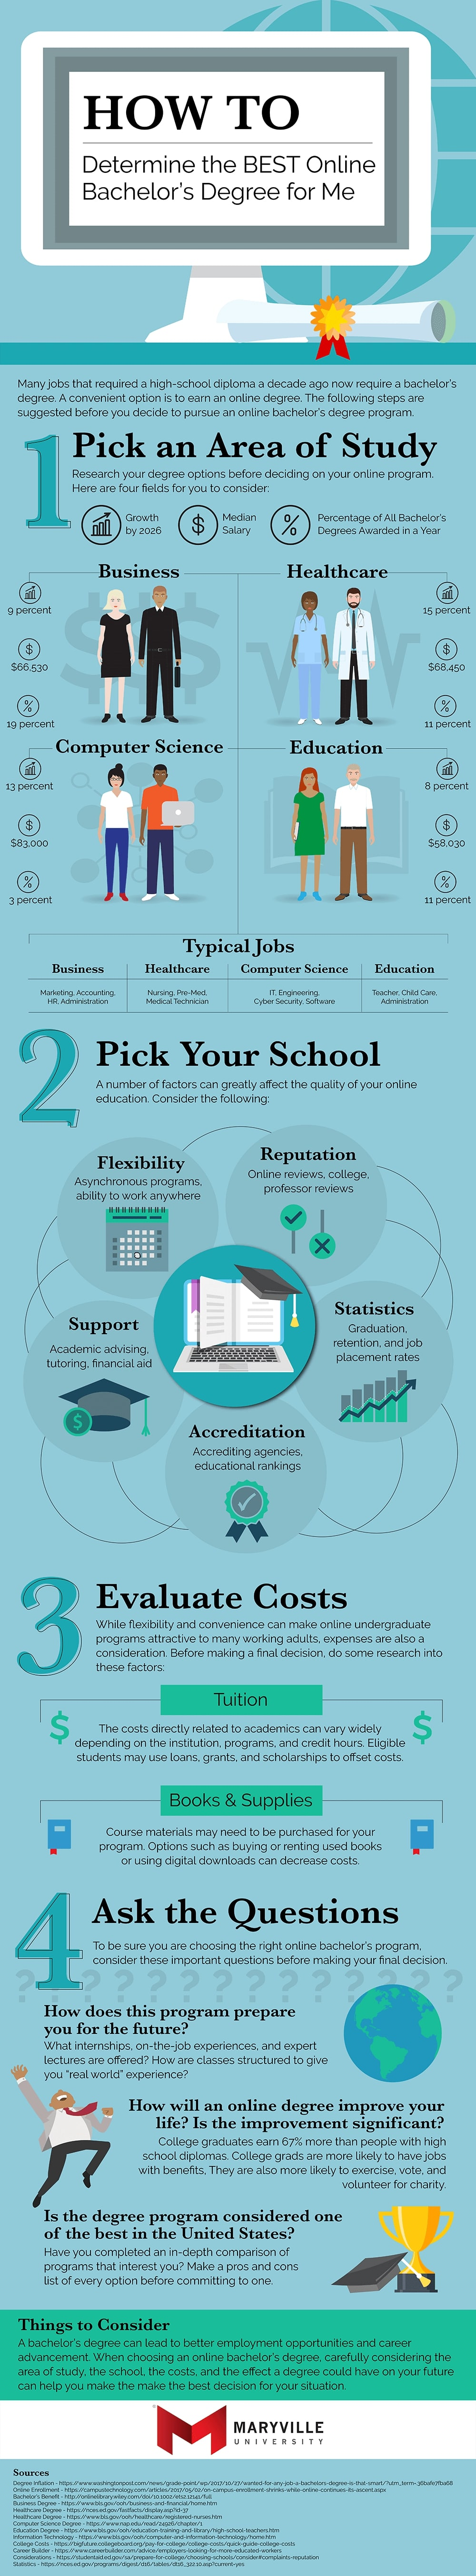 How to Determine the Best Online Bachelor's Degree in 4 Steps Infographic